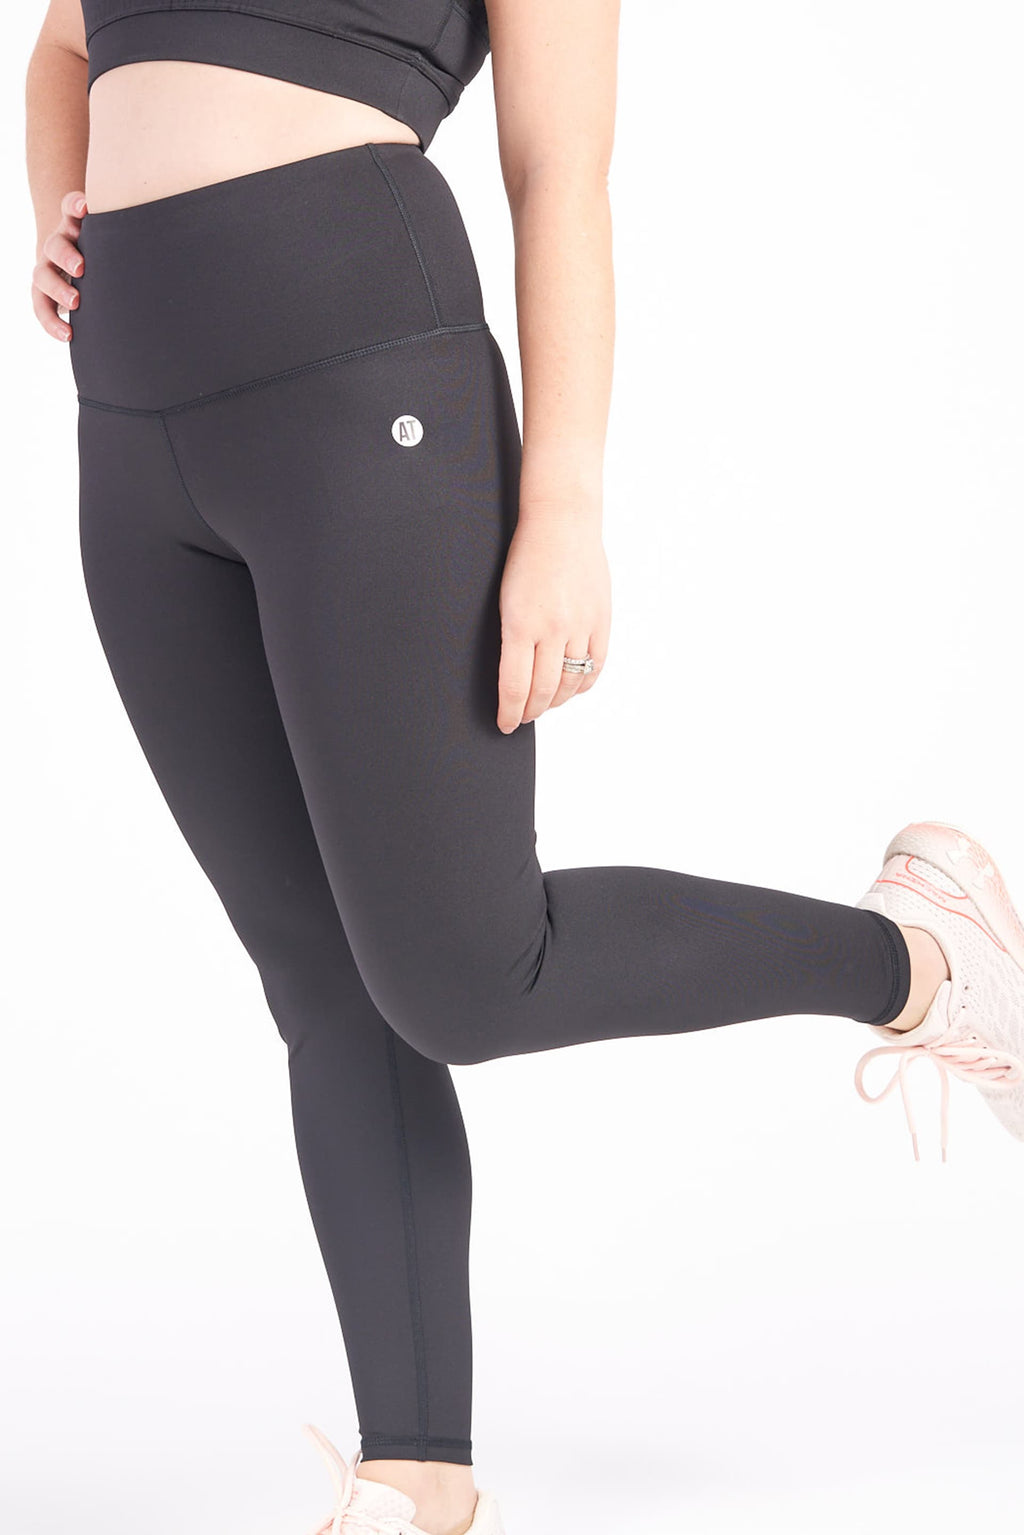 petite-high-waisted-gym-tights-small-side4